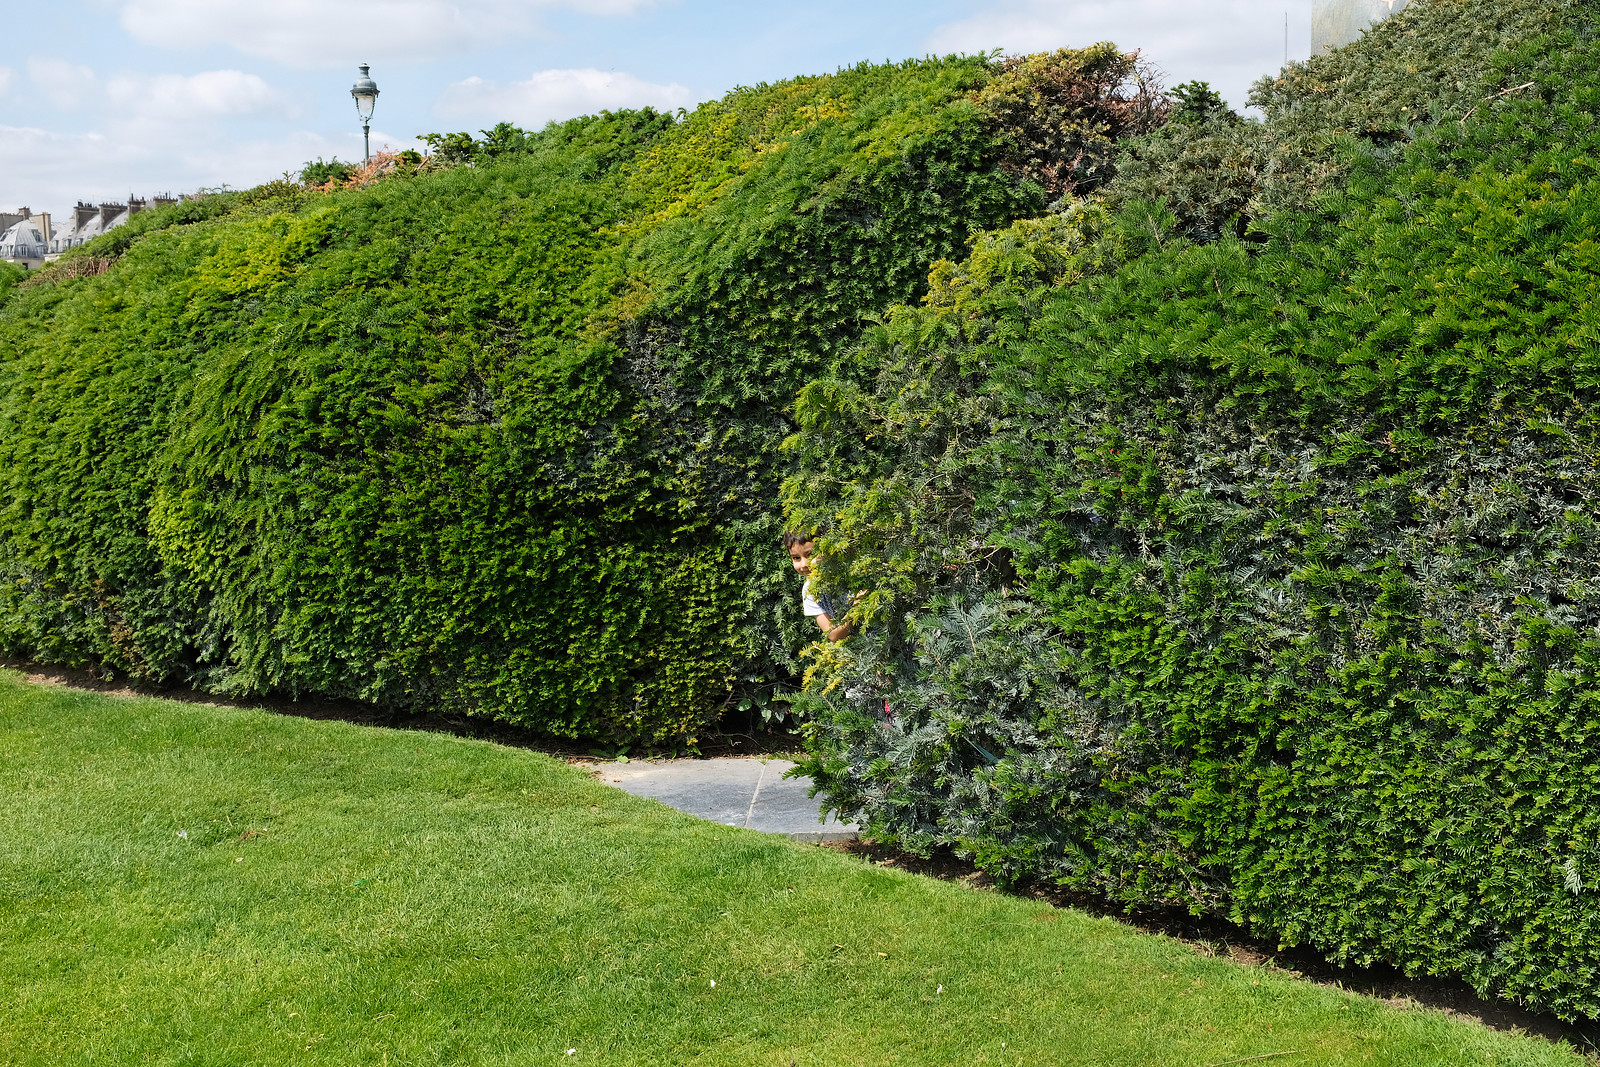 A boy peeks out from a hedge